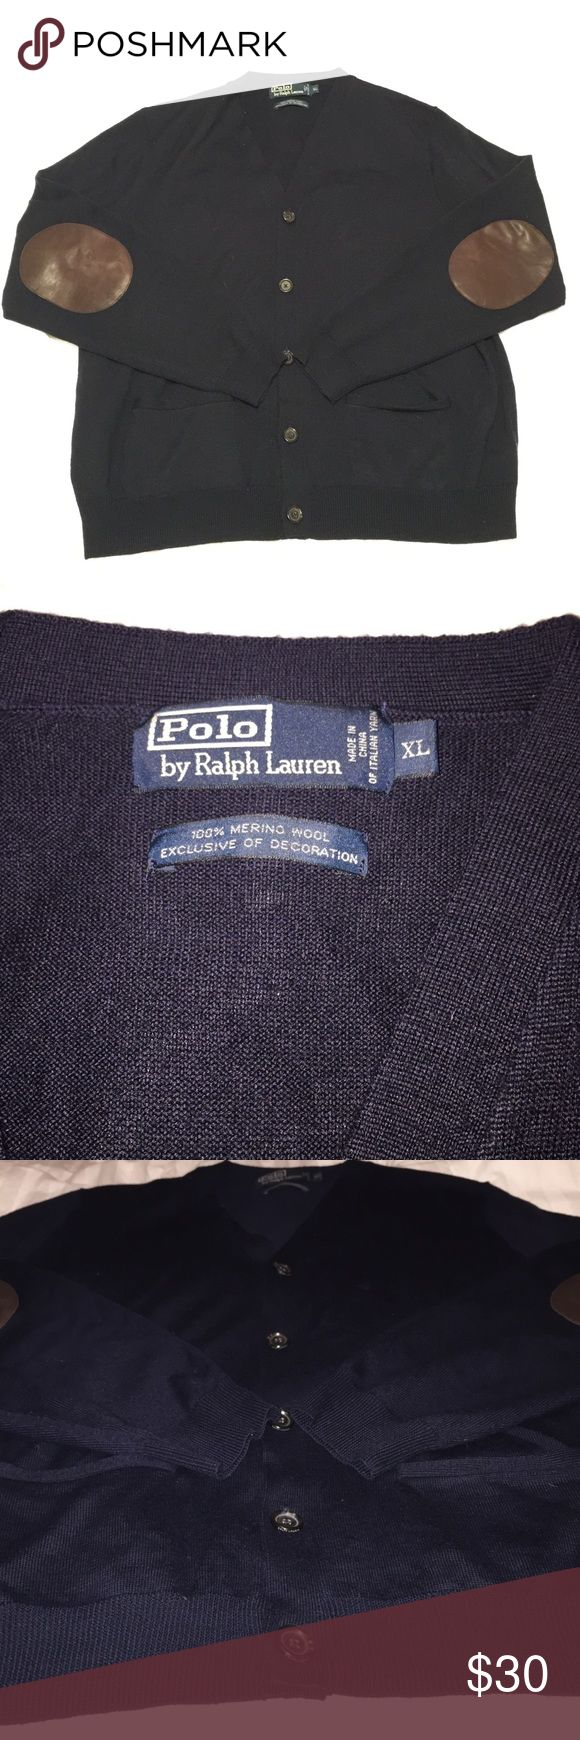 Ralph Lauren Polo Cardigan Navy Ralph Lauren Polo Cardigan with leather elbow patches. Great condition. No holes, rips, or tears. Polo by Ralph Lauren Sweaters Cardigan